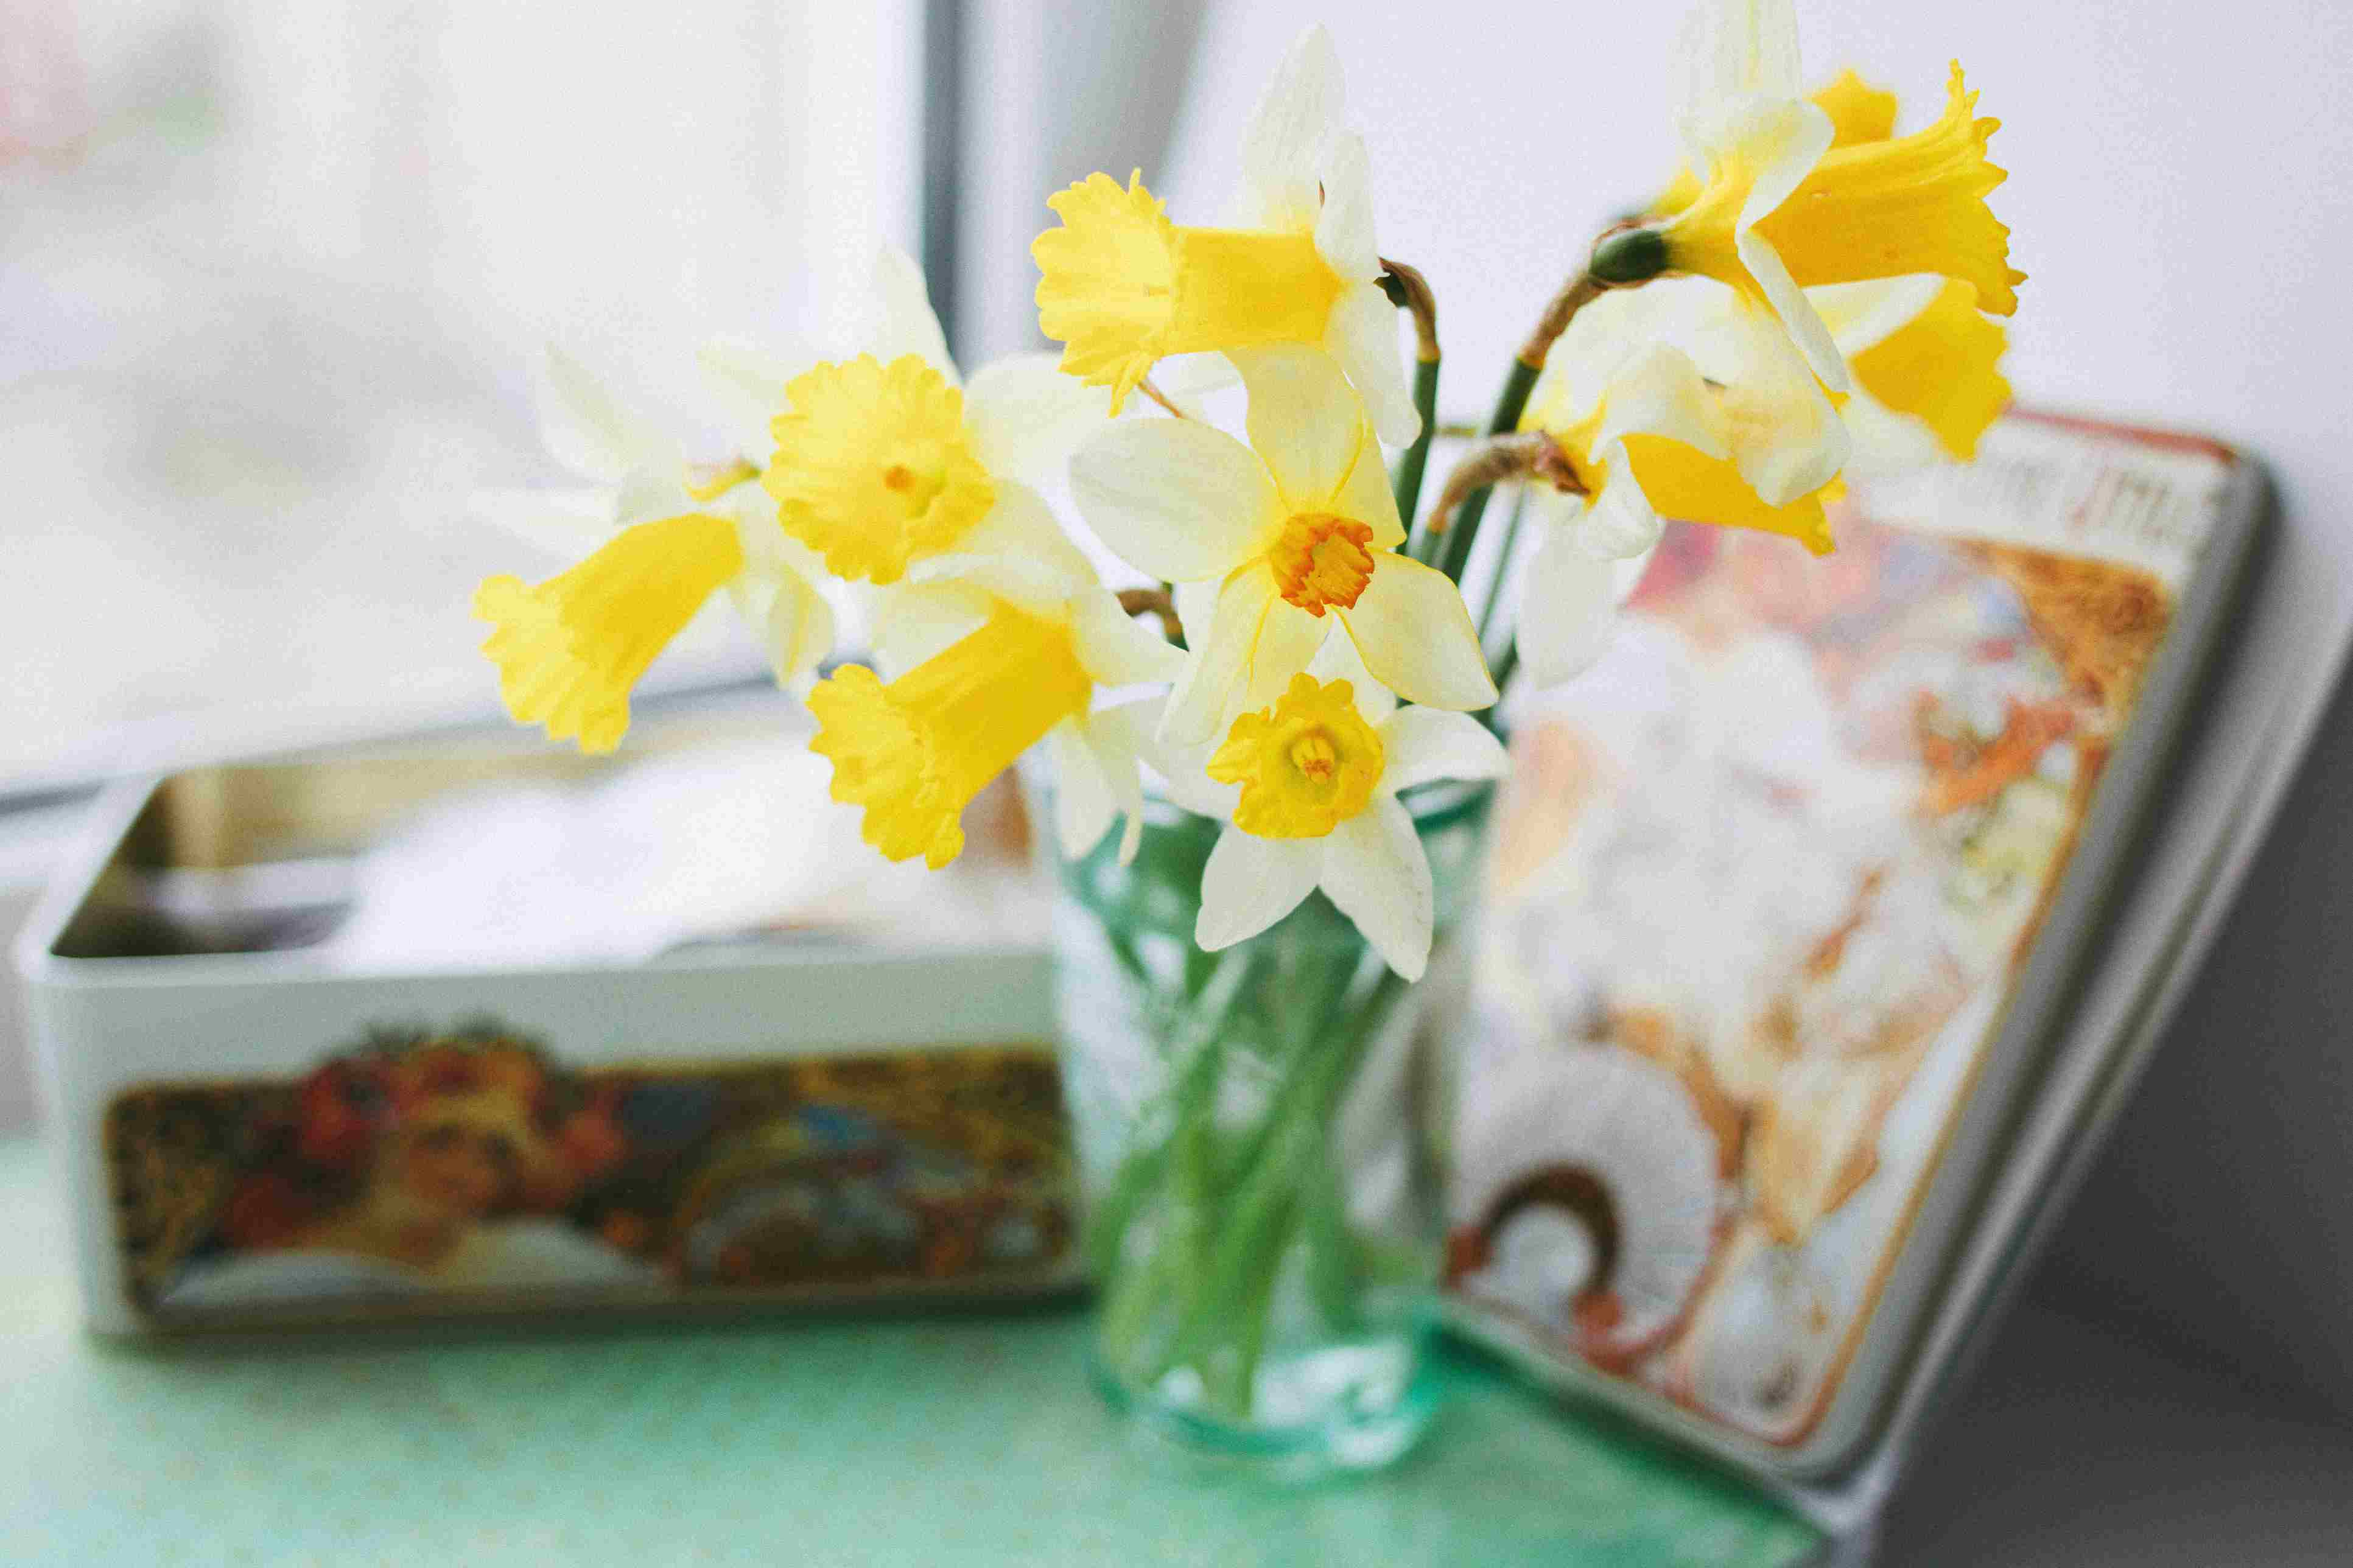 Yellow daffodils in a vase next to a tin